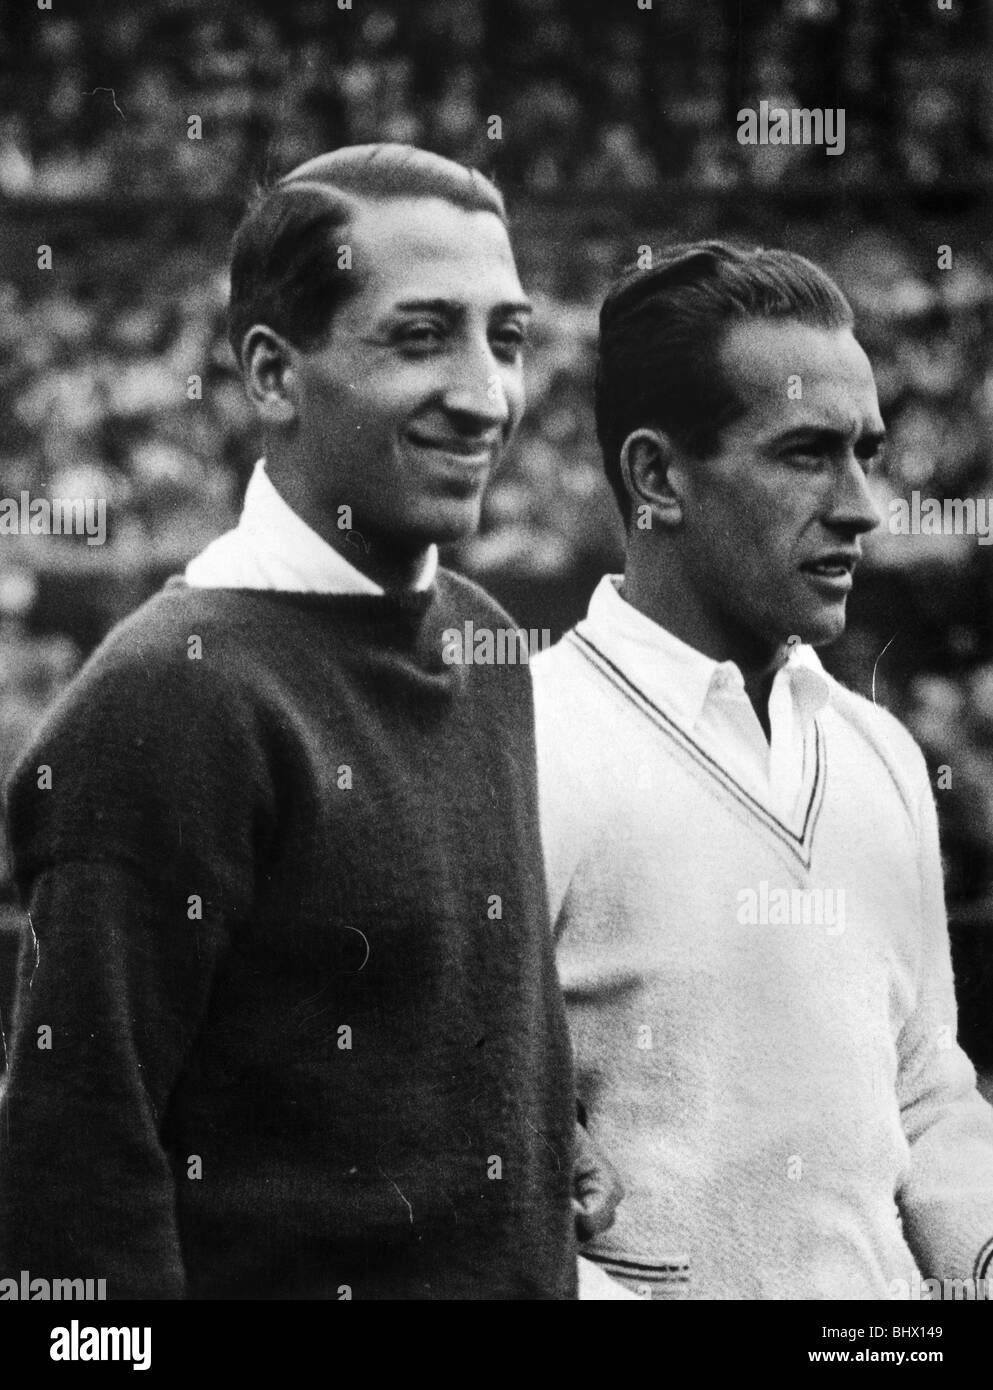 Rene Lacoste left and Henri Cochet two of the Four Musketeers